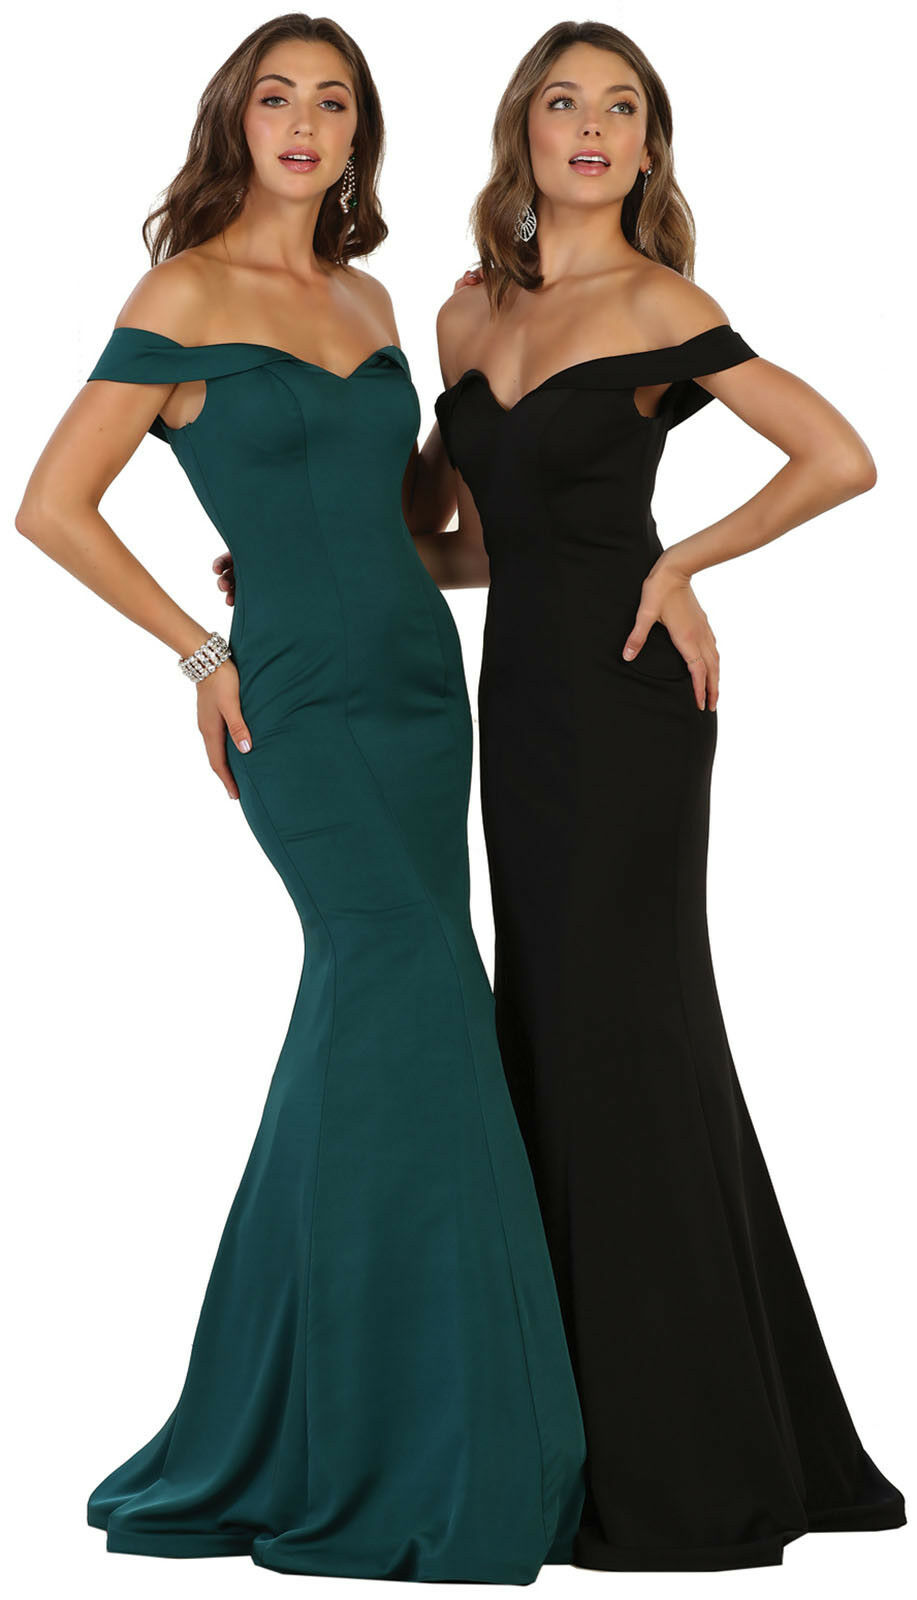 NEW PROM OFF THE SHOULDERS EVENING GOWNS SPECIAL OCCASION MERMAID STRETCHY DRESS